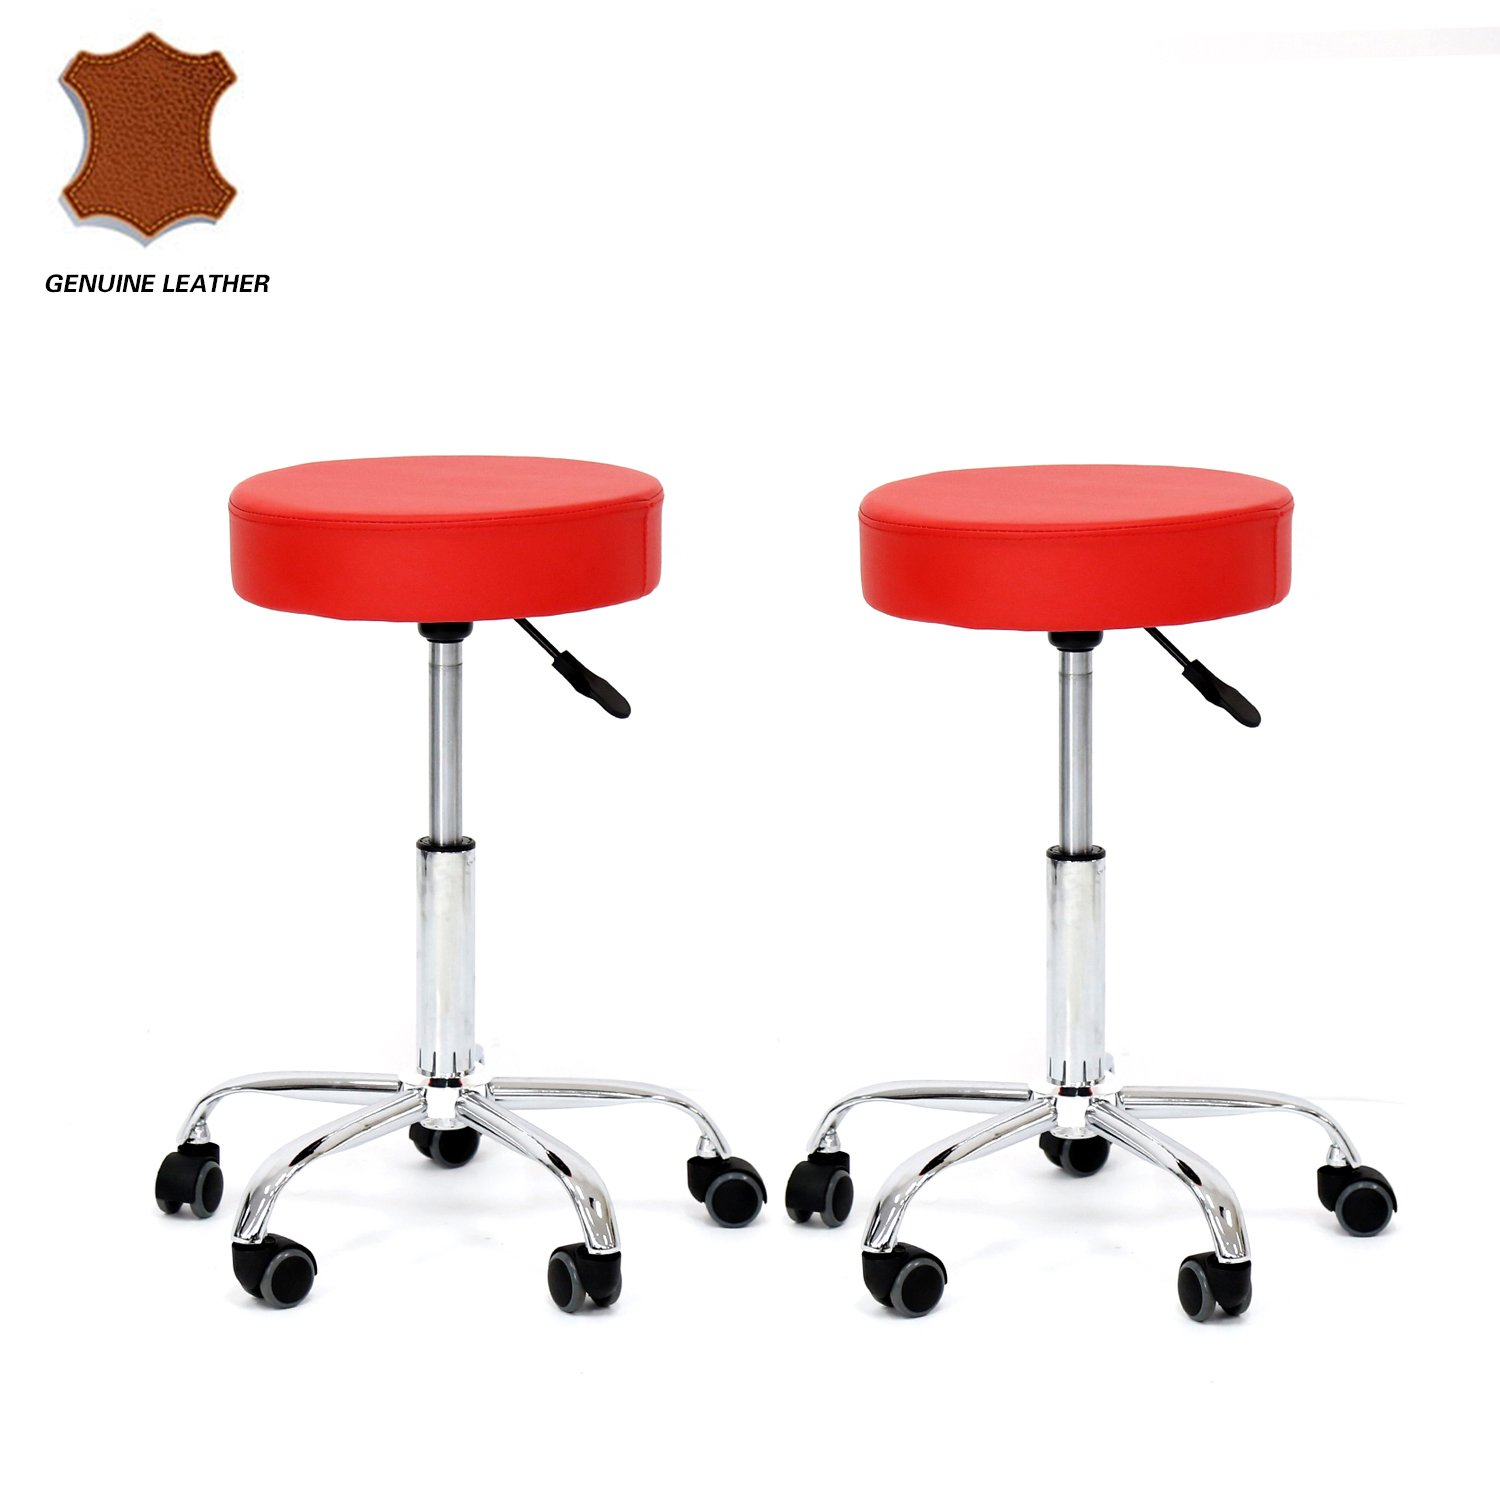 Kinbor Set of 2 Genuine Leather Adjustable Hydraulic Rolling Swivel Bar Stool Tattoo Facial Massage Spa Stool Chairs (Red)